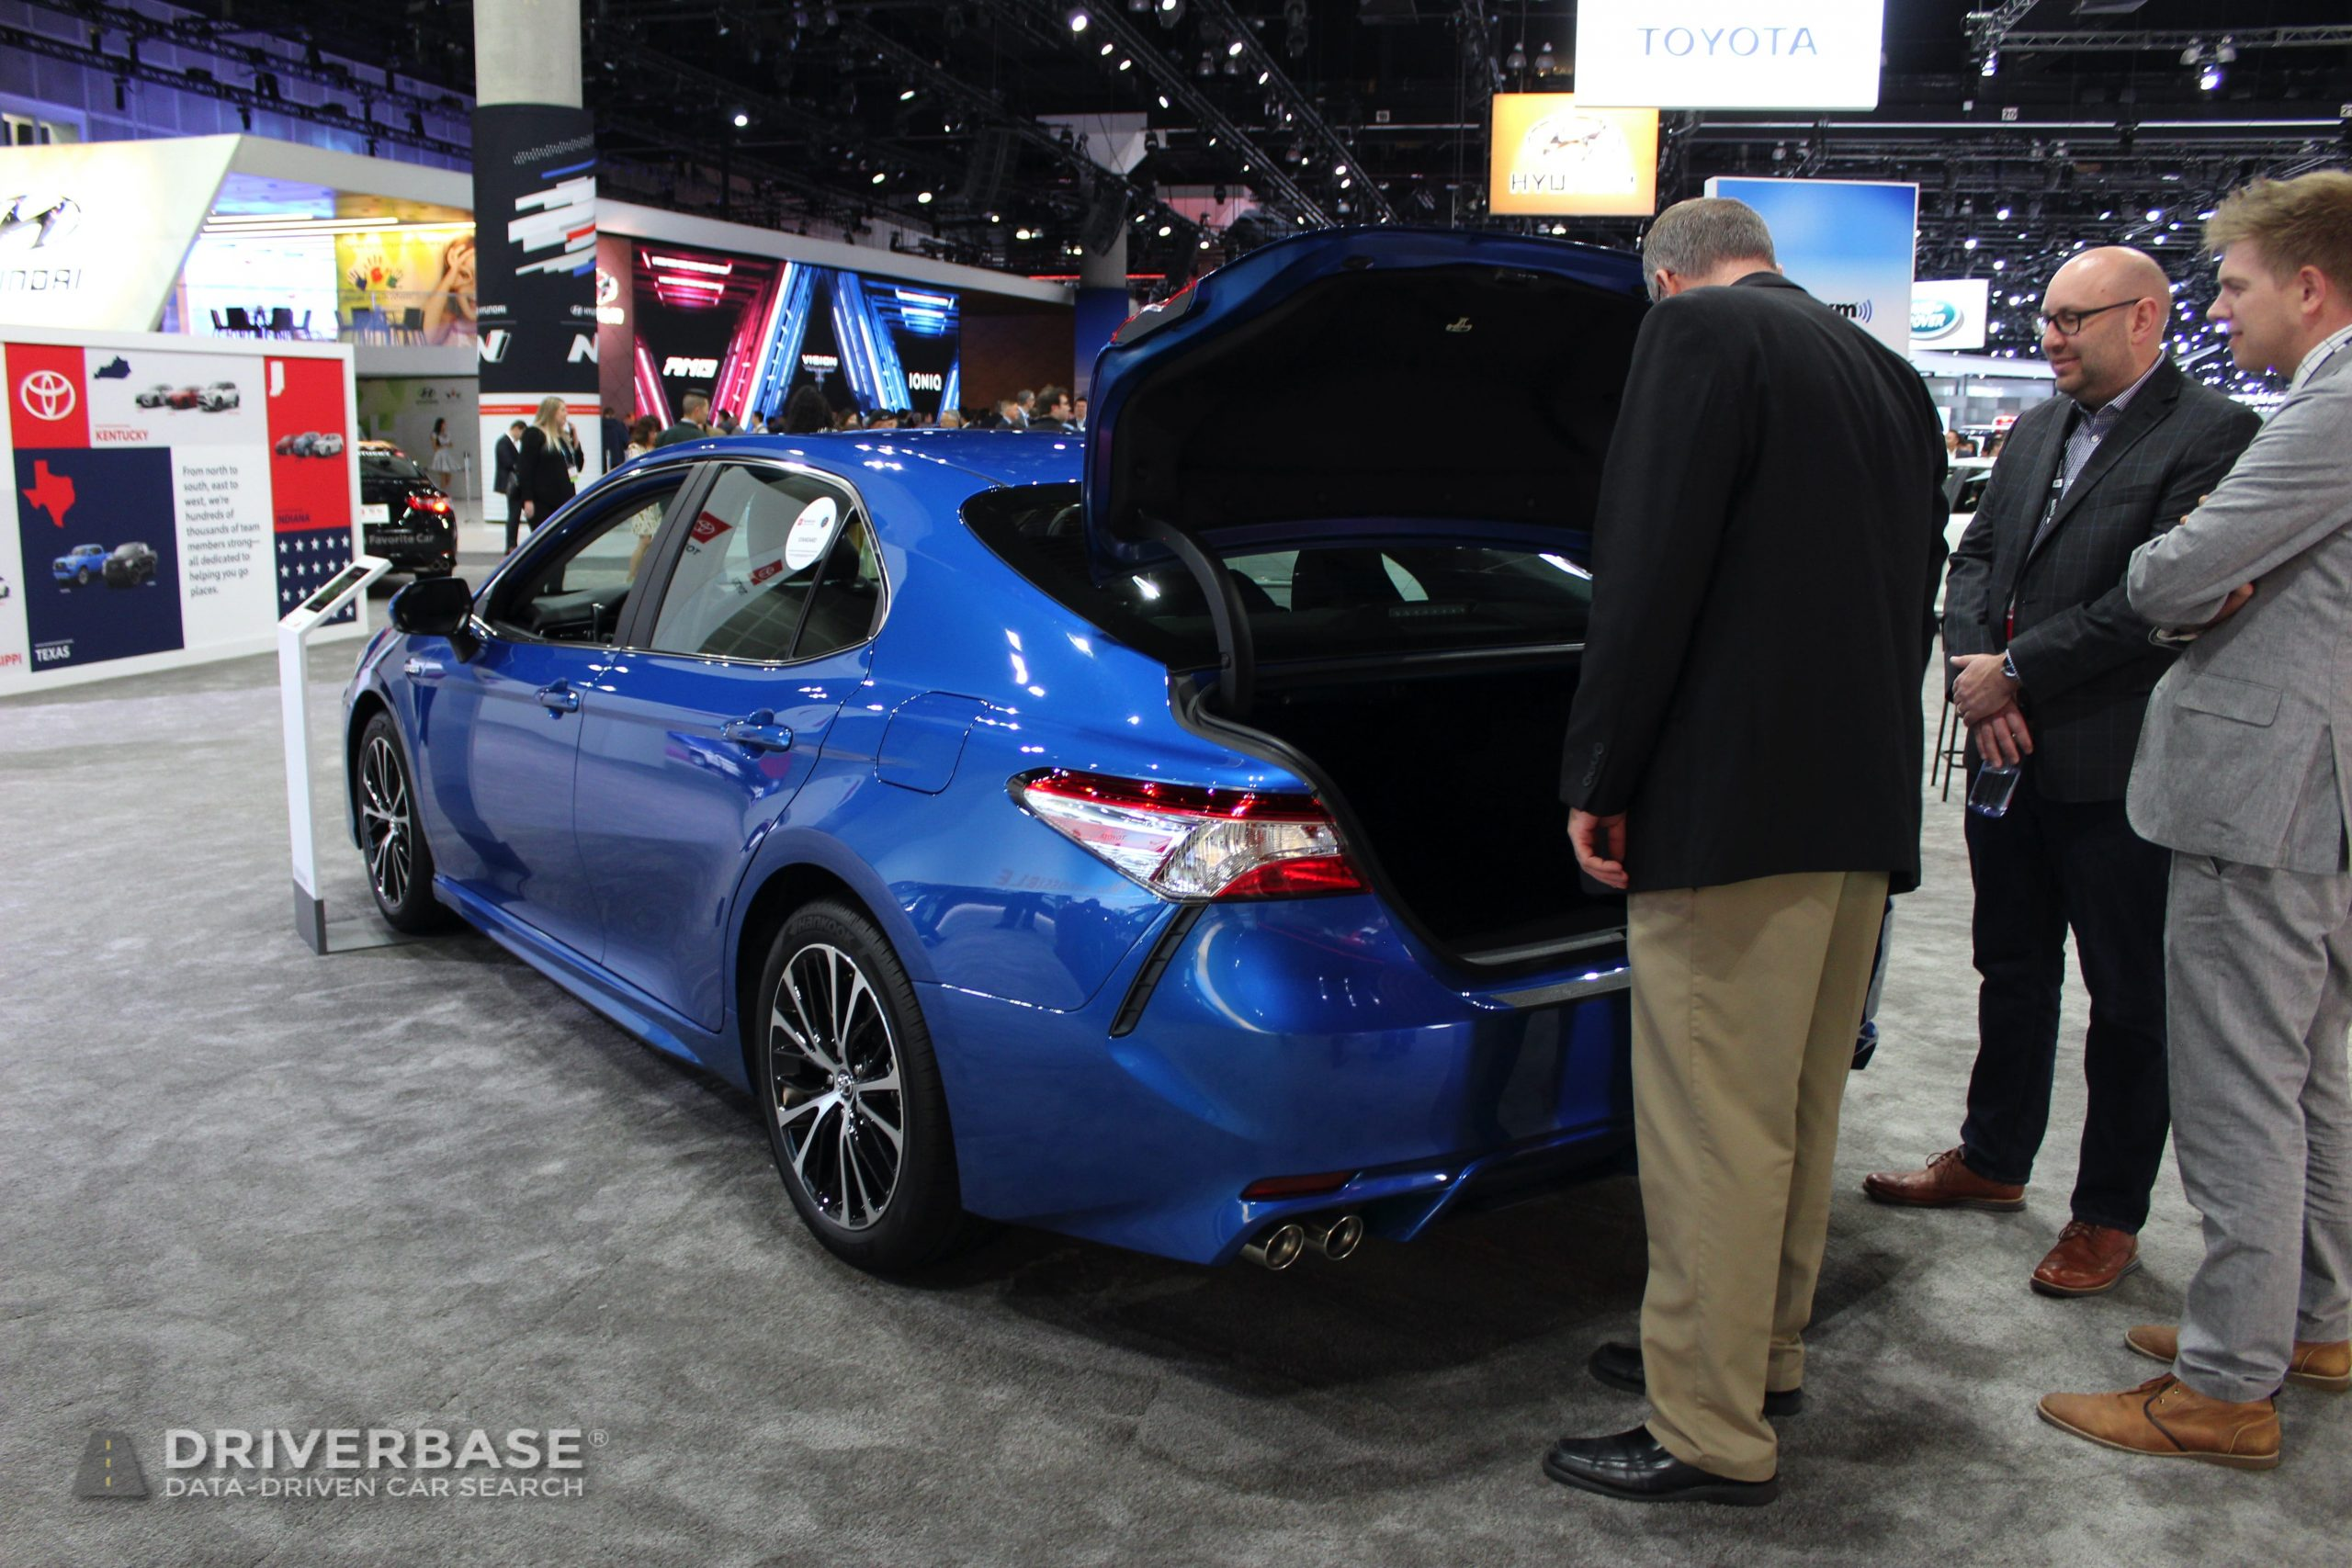 2020 Toyota Camry Hybrid at the 2019 Los Angeles Auto Show